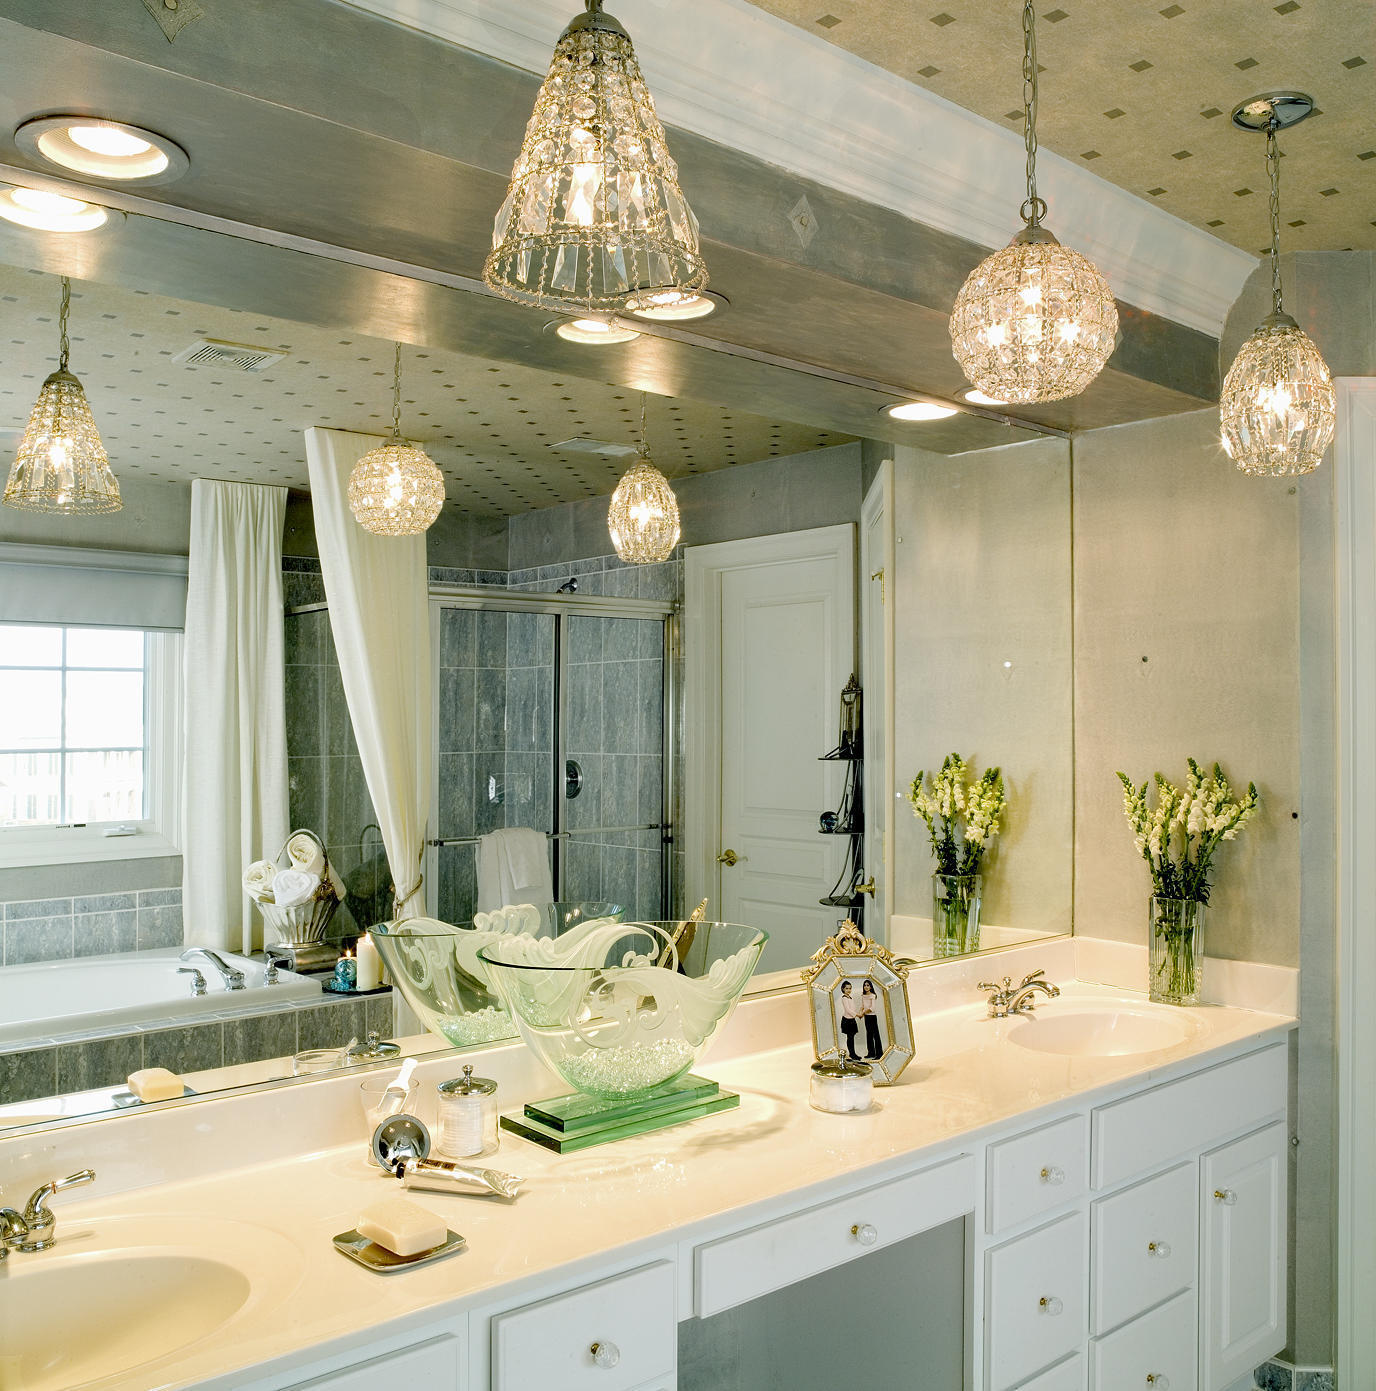 Modern Bathroom Ceiling Crystal Light (Image 5 of 10)